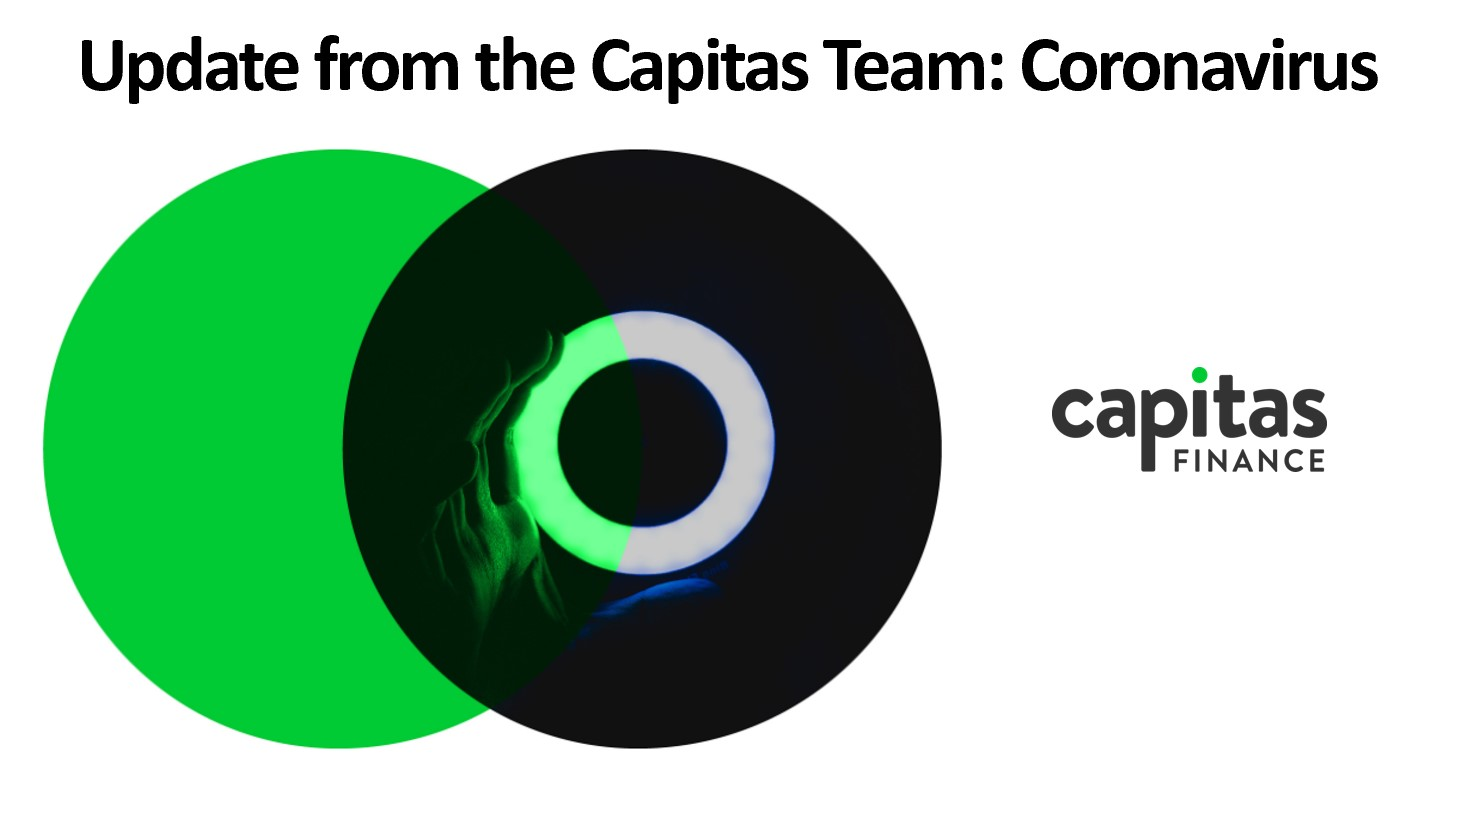 We want to take this opportunity to give our customers, introducers, funding partners and stakeholders a Capitas Finance Coronavirus Update